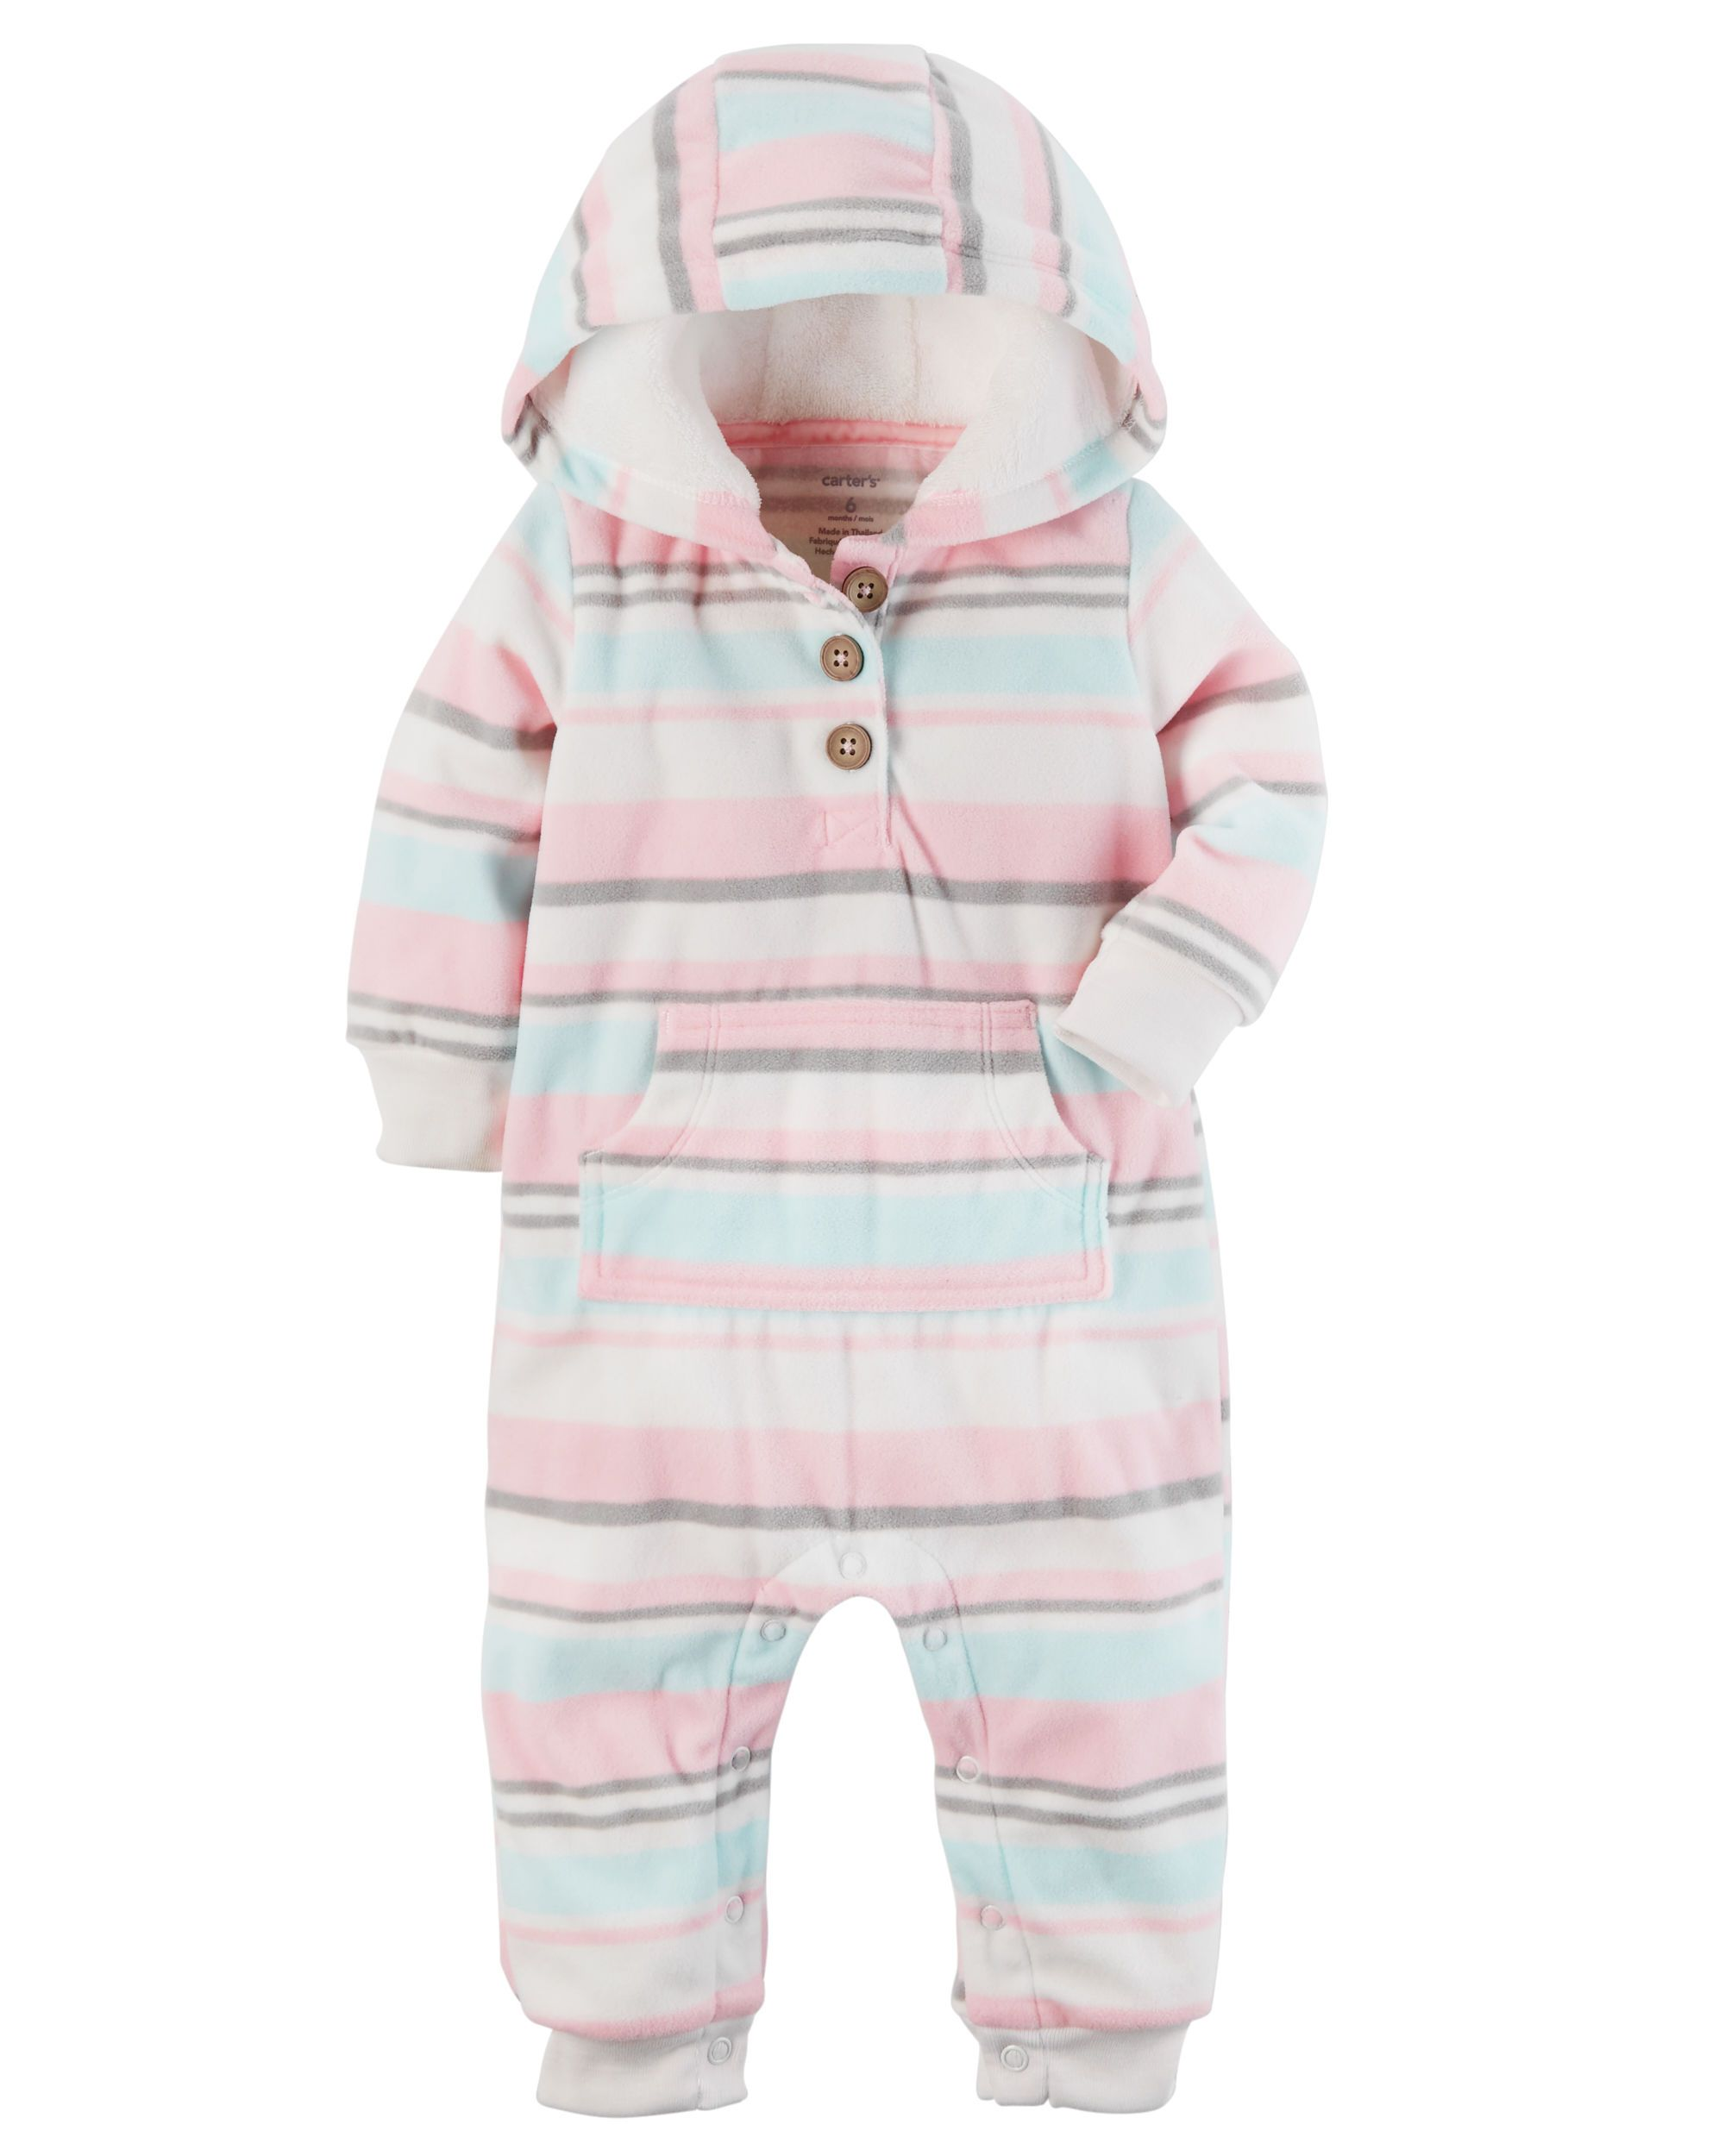 7c7c91f7a5f4 Baby Girl Hooded Fleece Jumpsuit